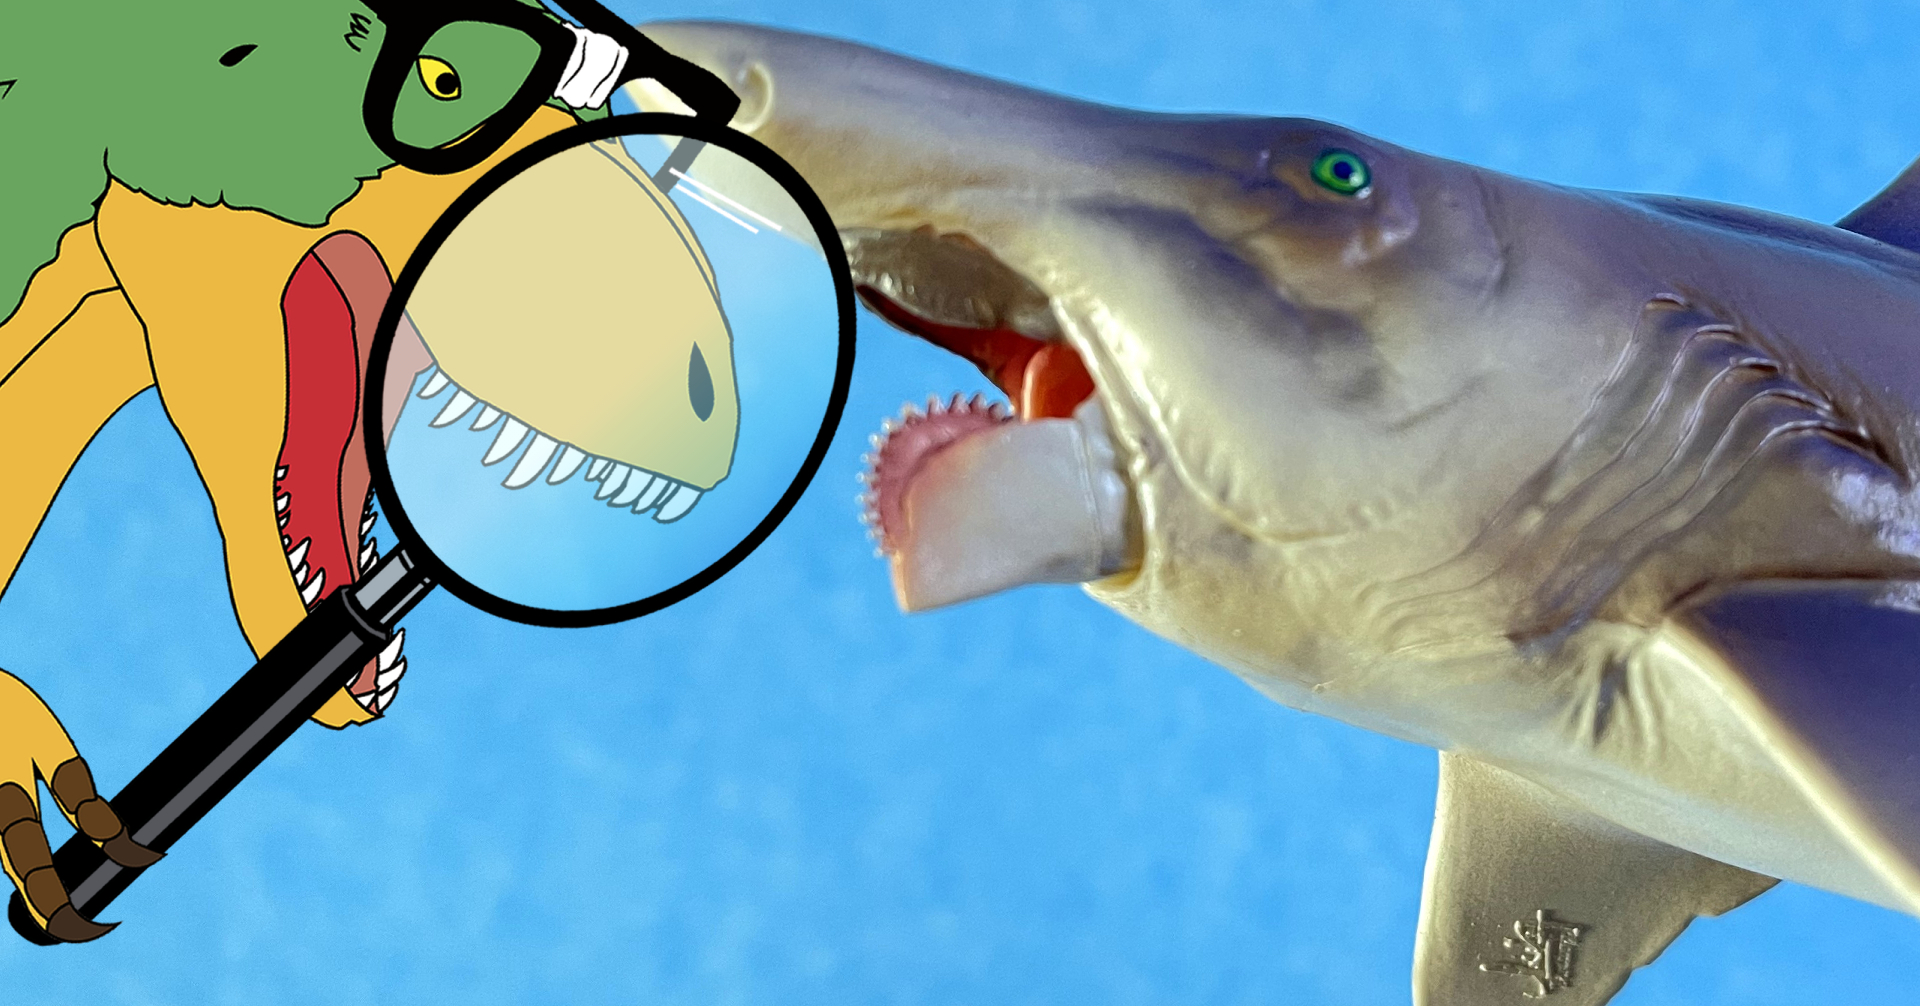 HELICOPRION (PNSO, 2021)